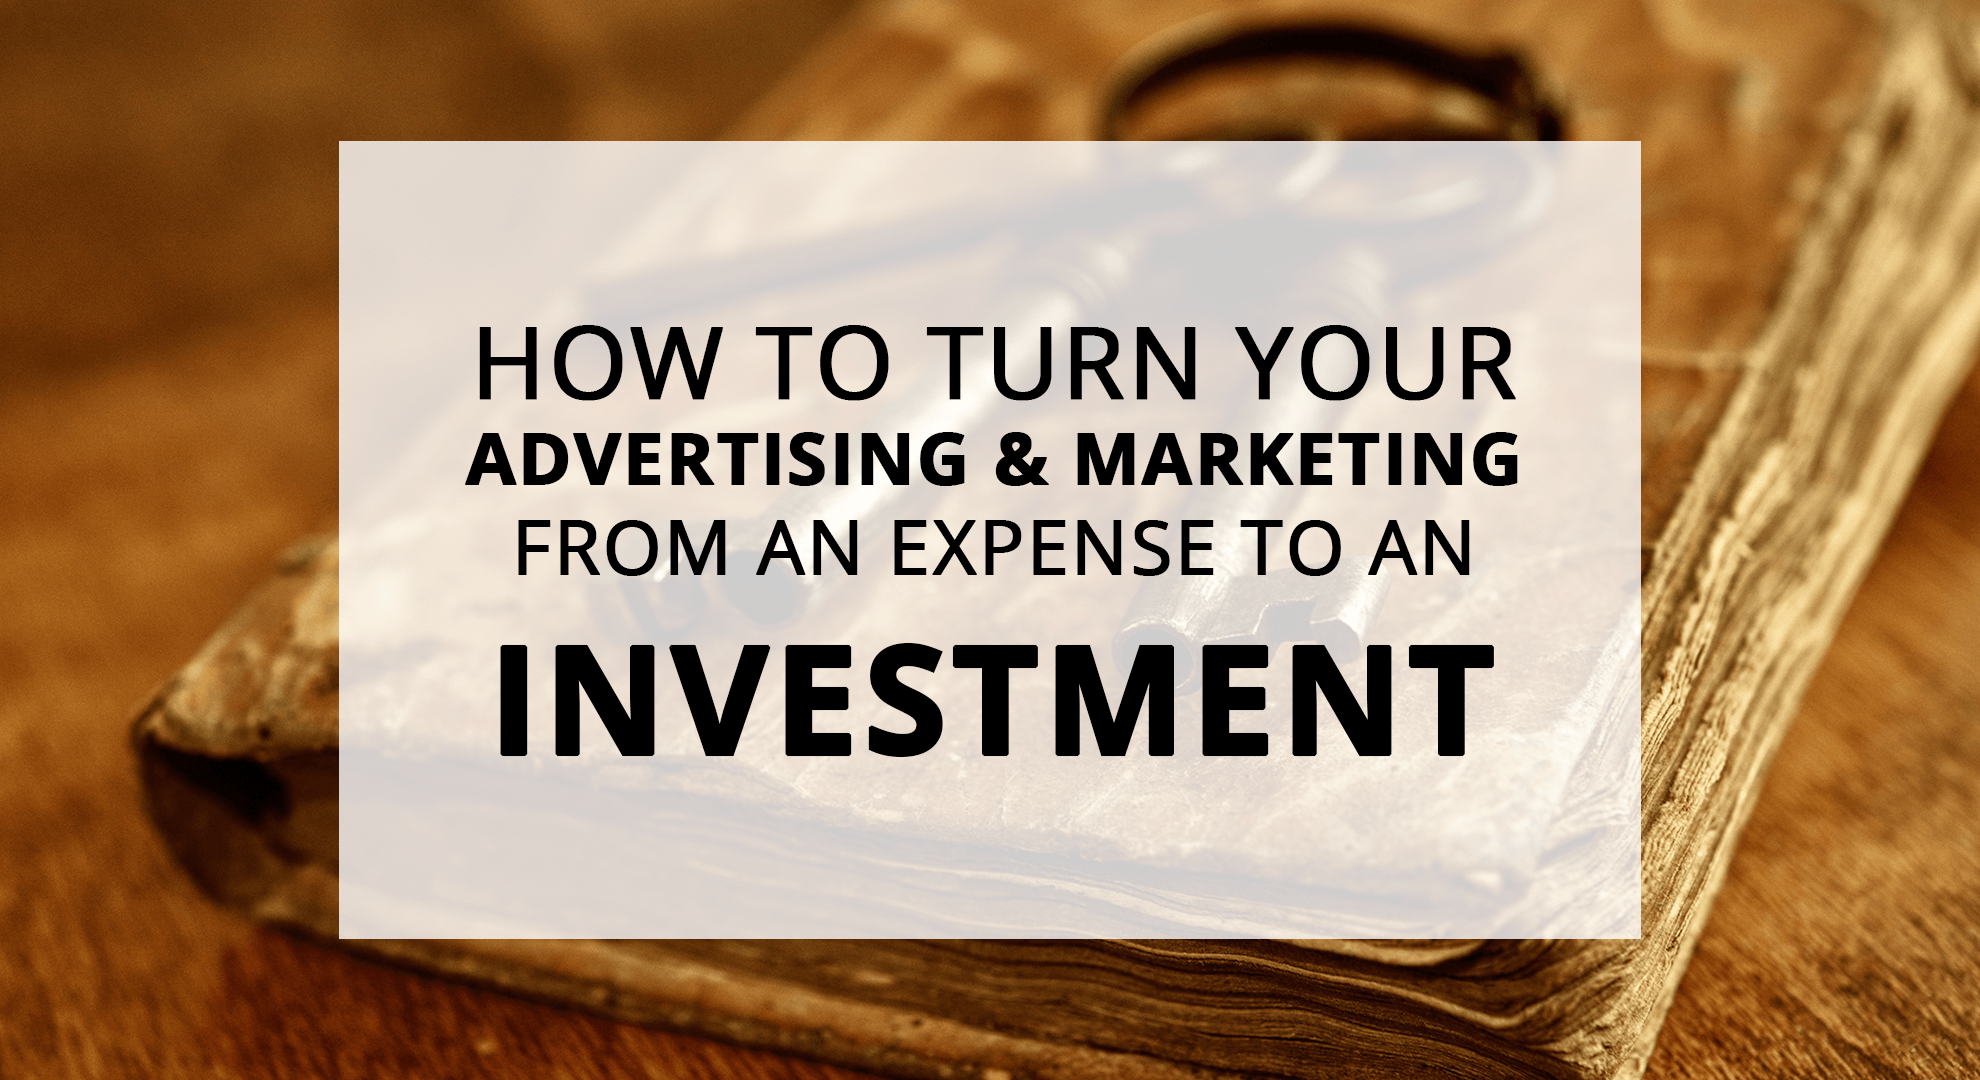 Turn your advertising from an expense into an investment